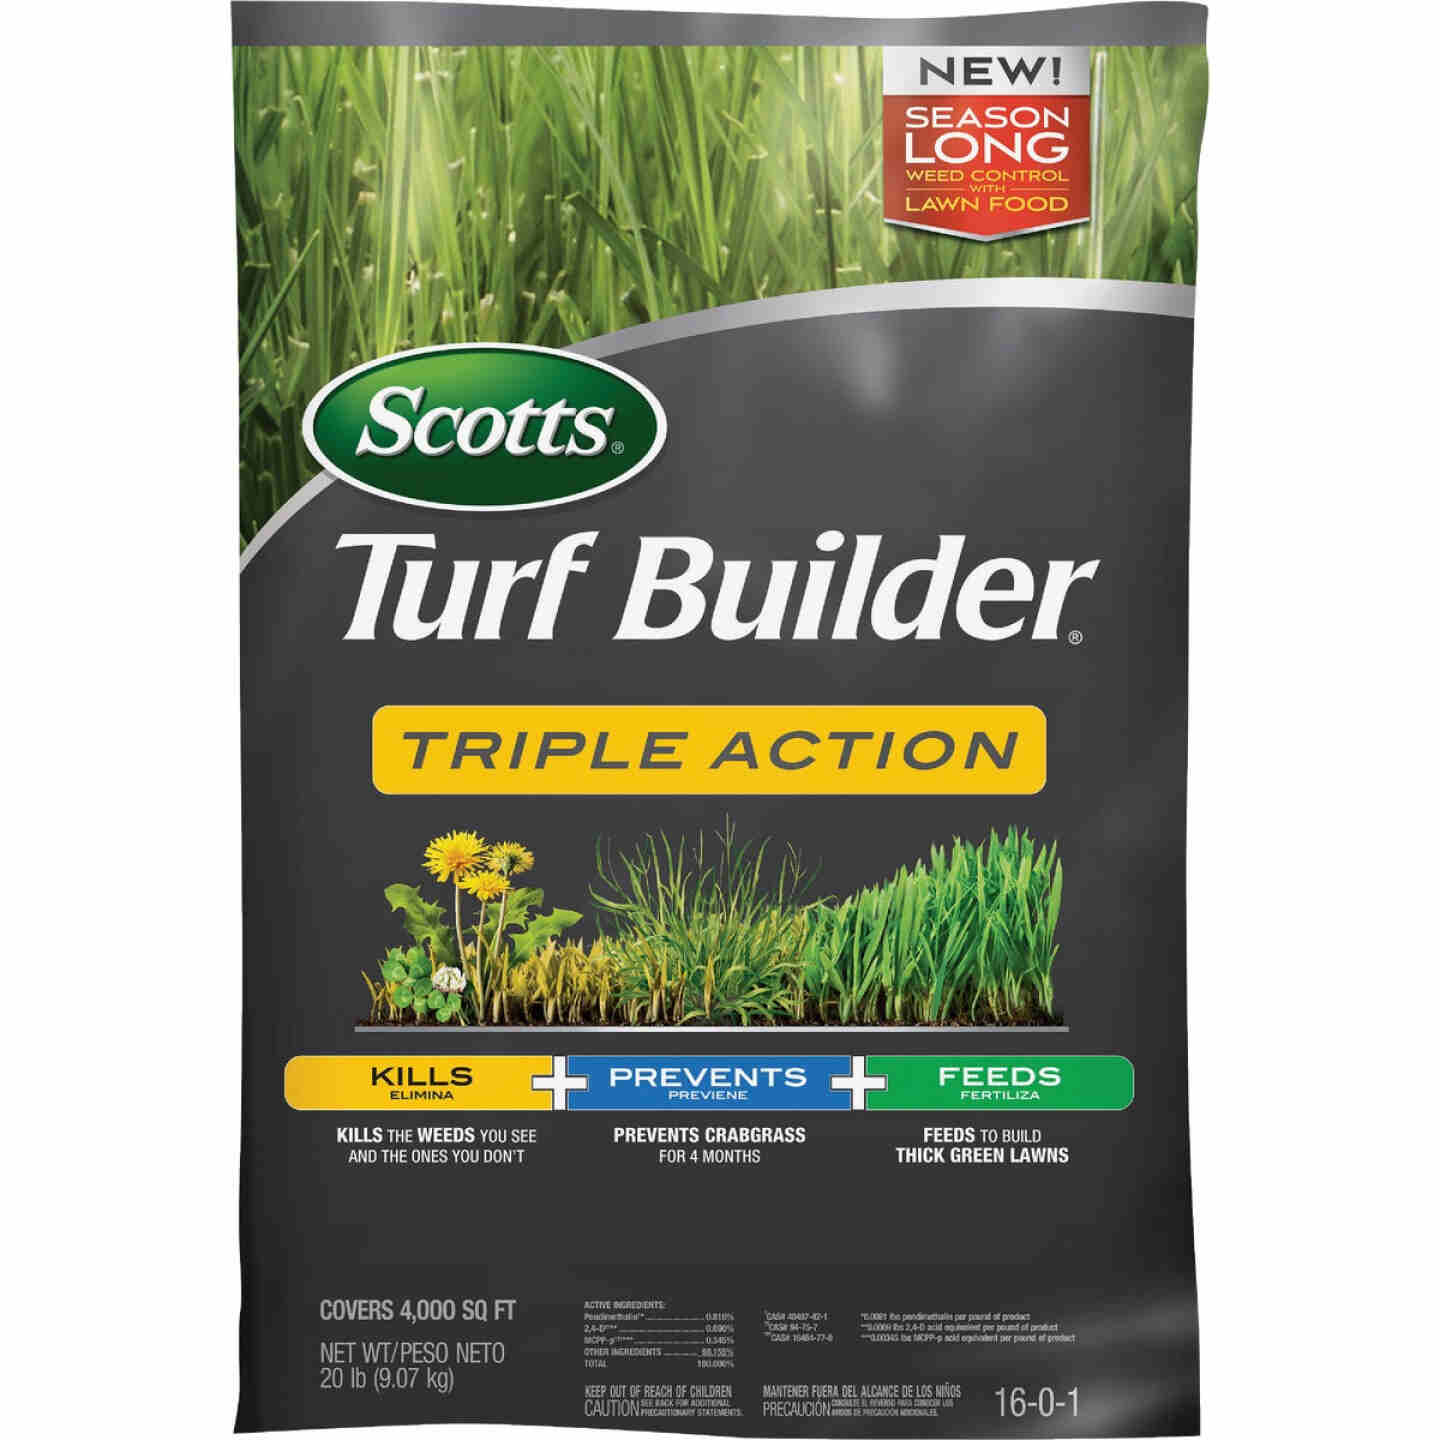 Scotts Turf Builder Triple Action 20 Lb. 4000 Sq. Ft. Lawn Fertilizer with Weed Killer Image 1